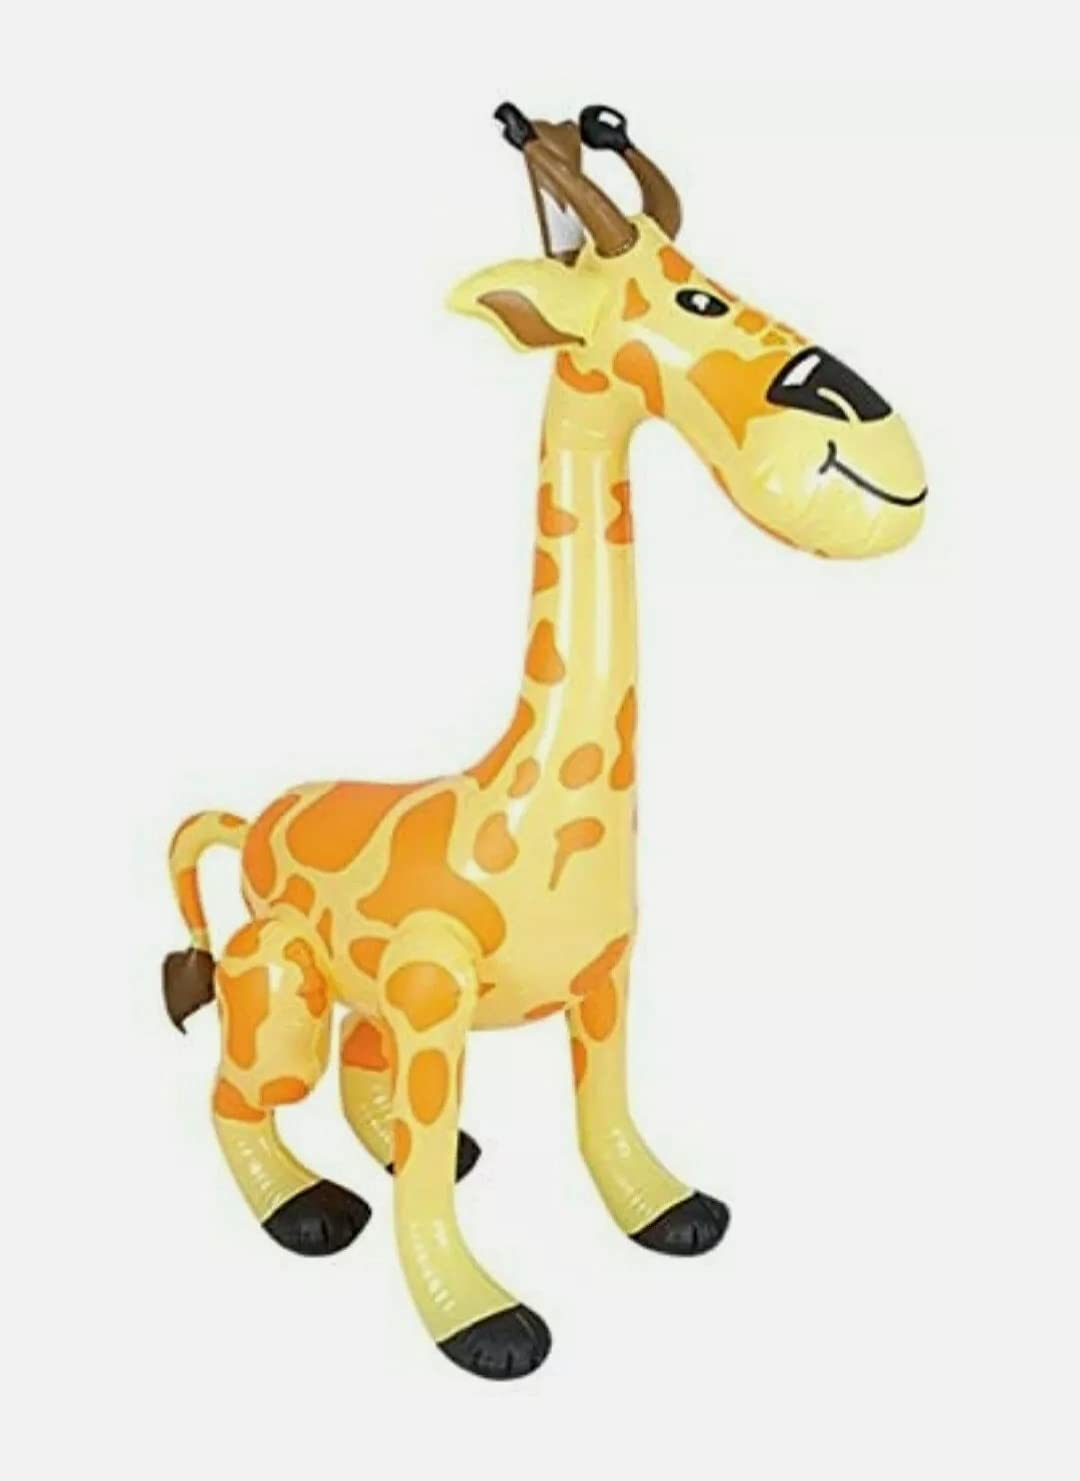 Giraffe Inflatable Blow Up SEAL limited product Safari Inflate Decoratio Party 5 ☆ popular Animal